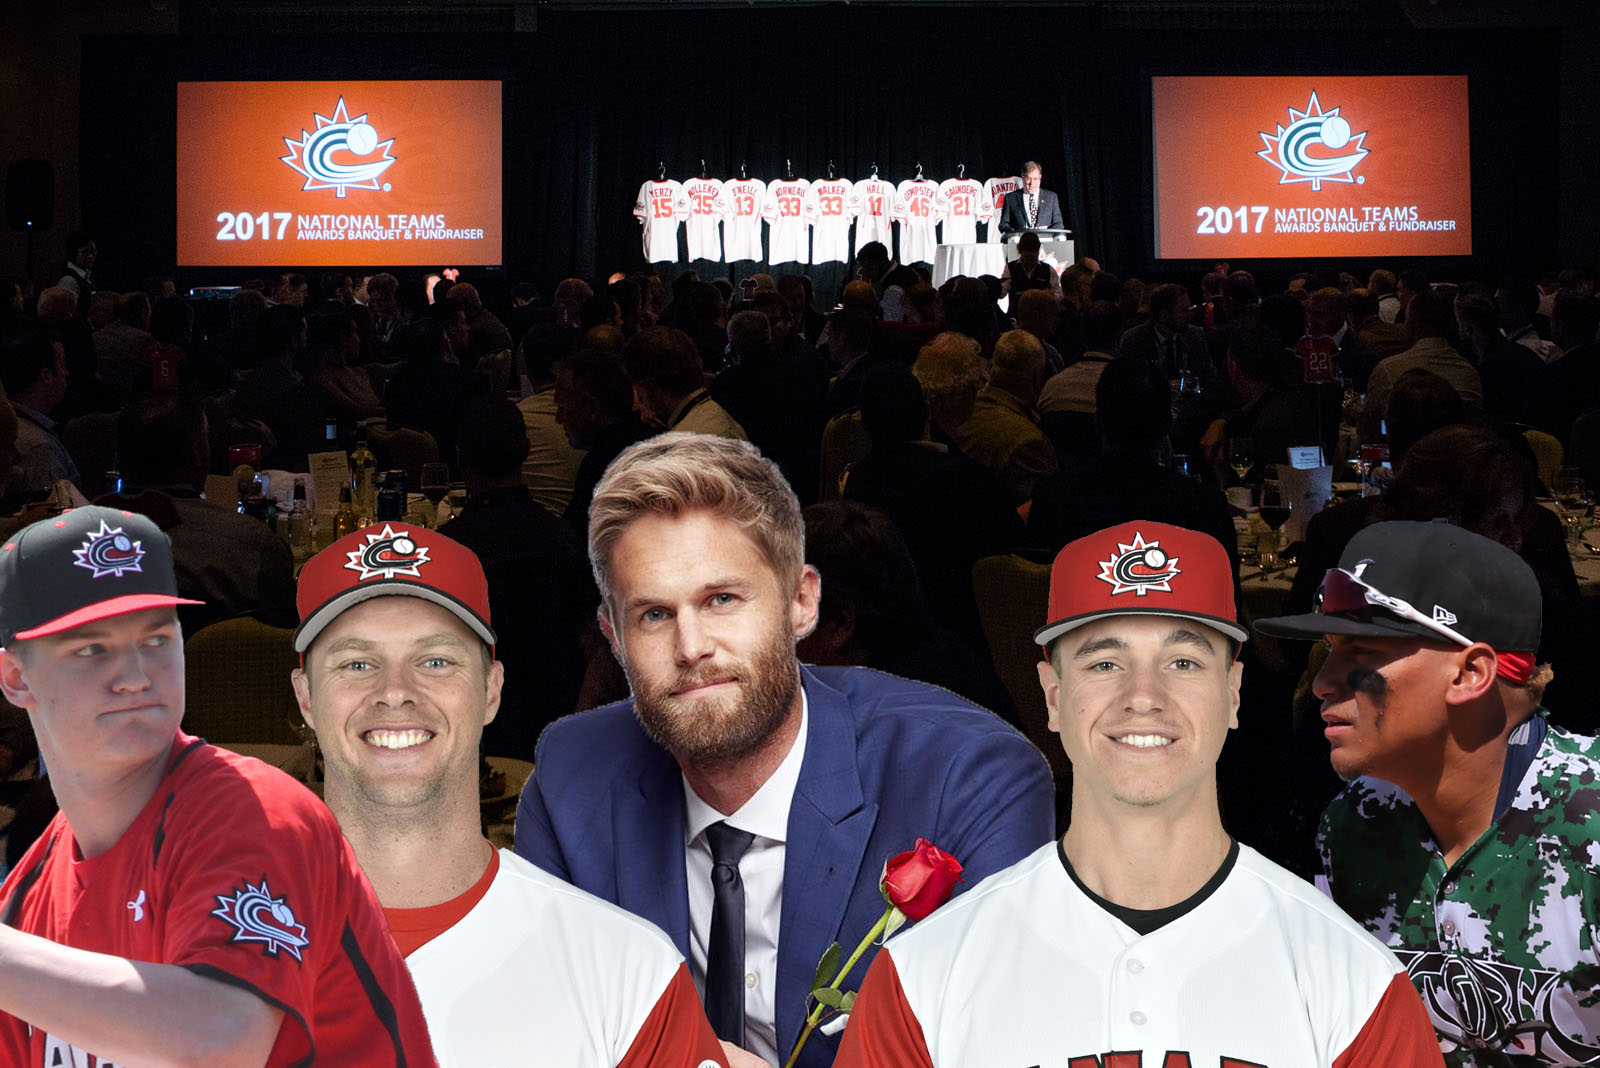 Register today for the Baseball Canada National Teams Awards Banquet & Fundraiser!